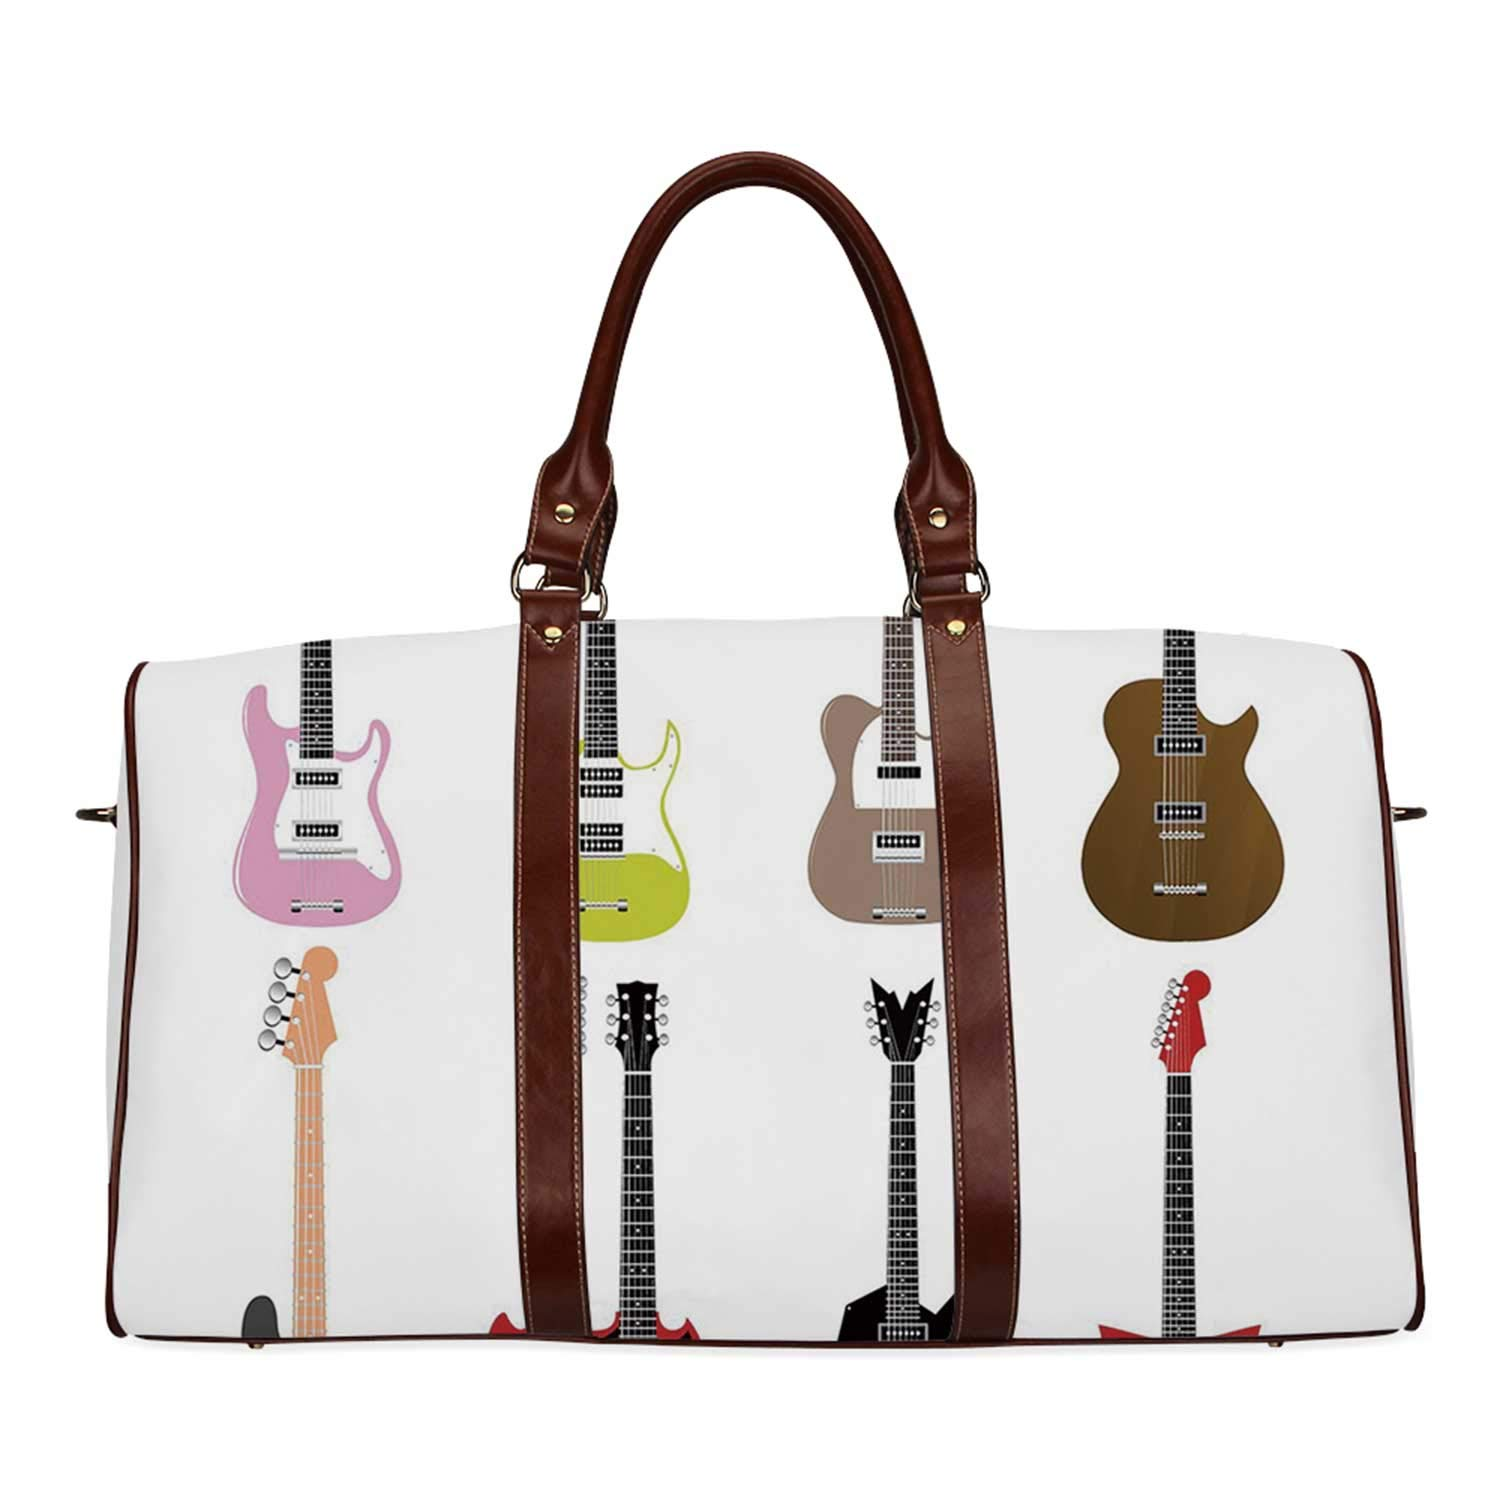 Guitar Practicality Travel Bag,Graphic Collection of Guitars Colorful Stringed Instruments Fretboard Rock Blues Decorative for School,20.8''L x 12''W x 9.8''H by YOLIYANA